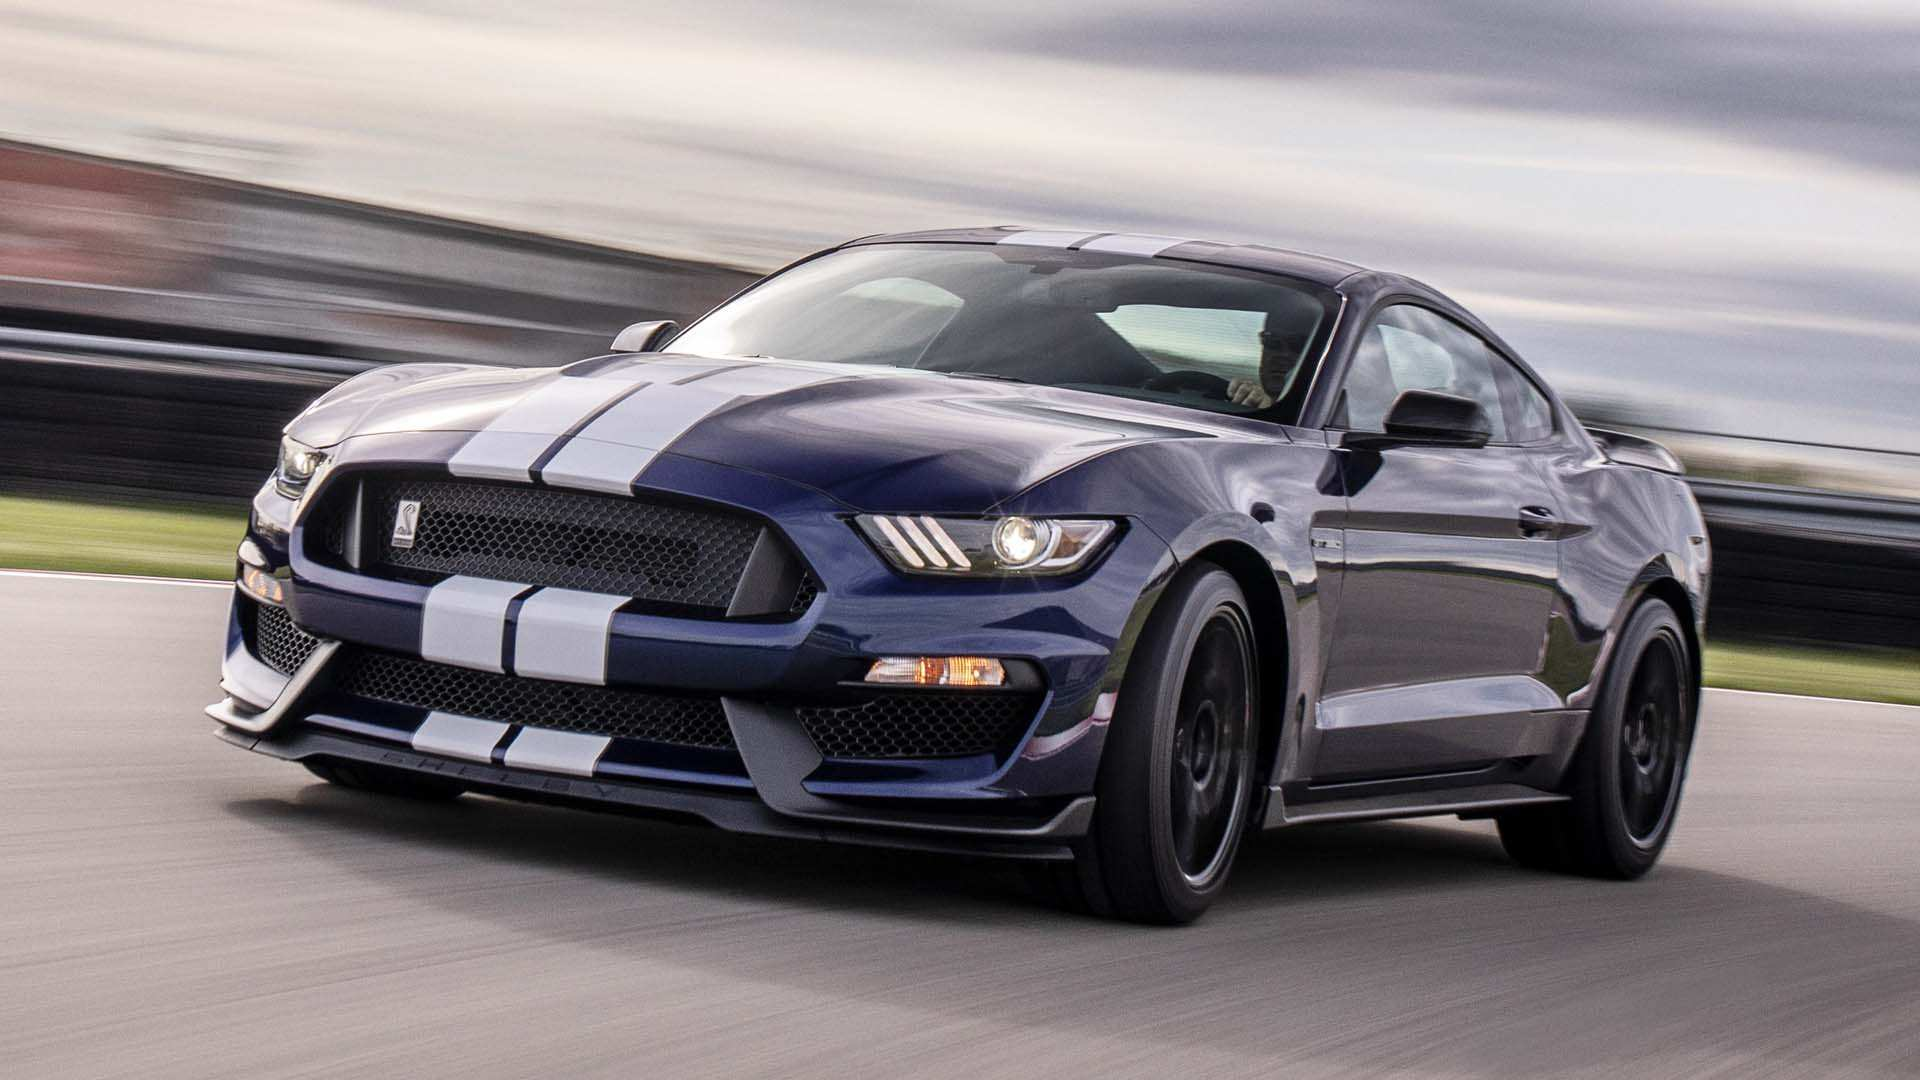 78 All New 2020 Mustang Shelby Gt350 Performance and New Engine for 2020 Mustang Shelby Gt350